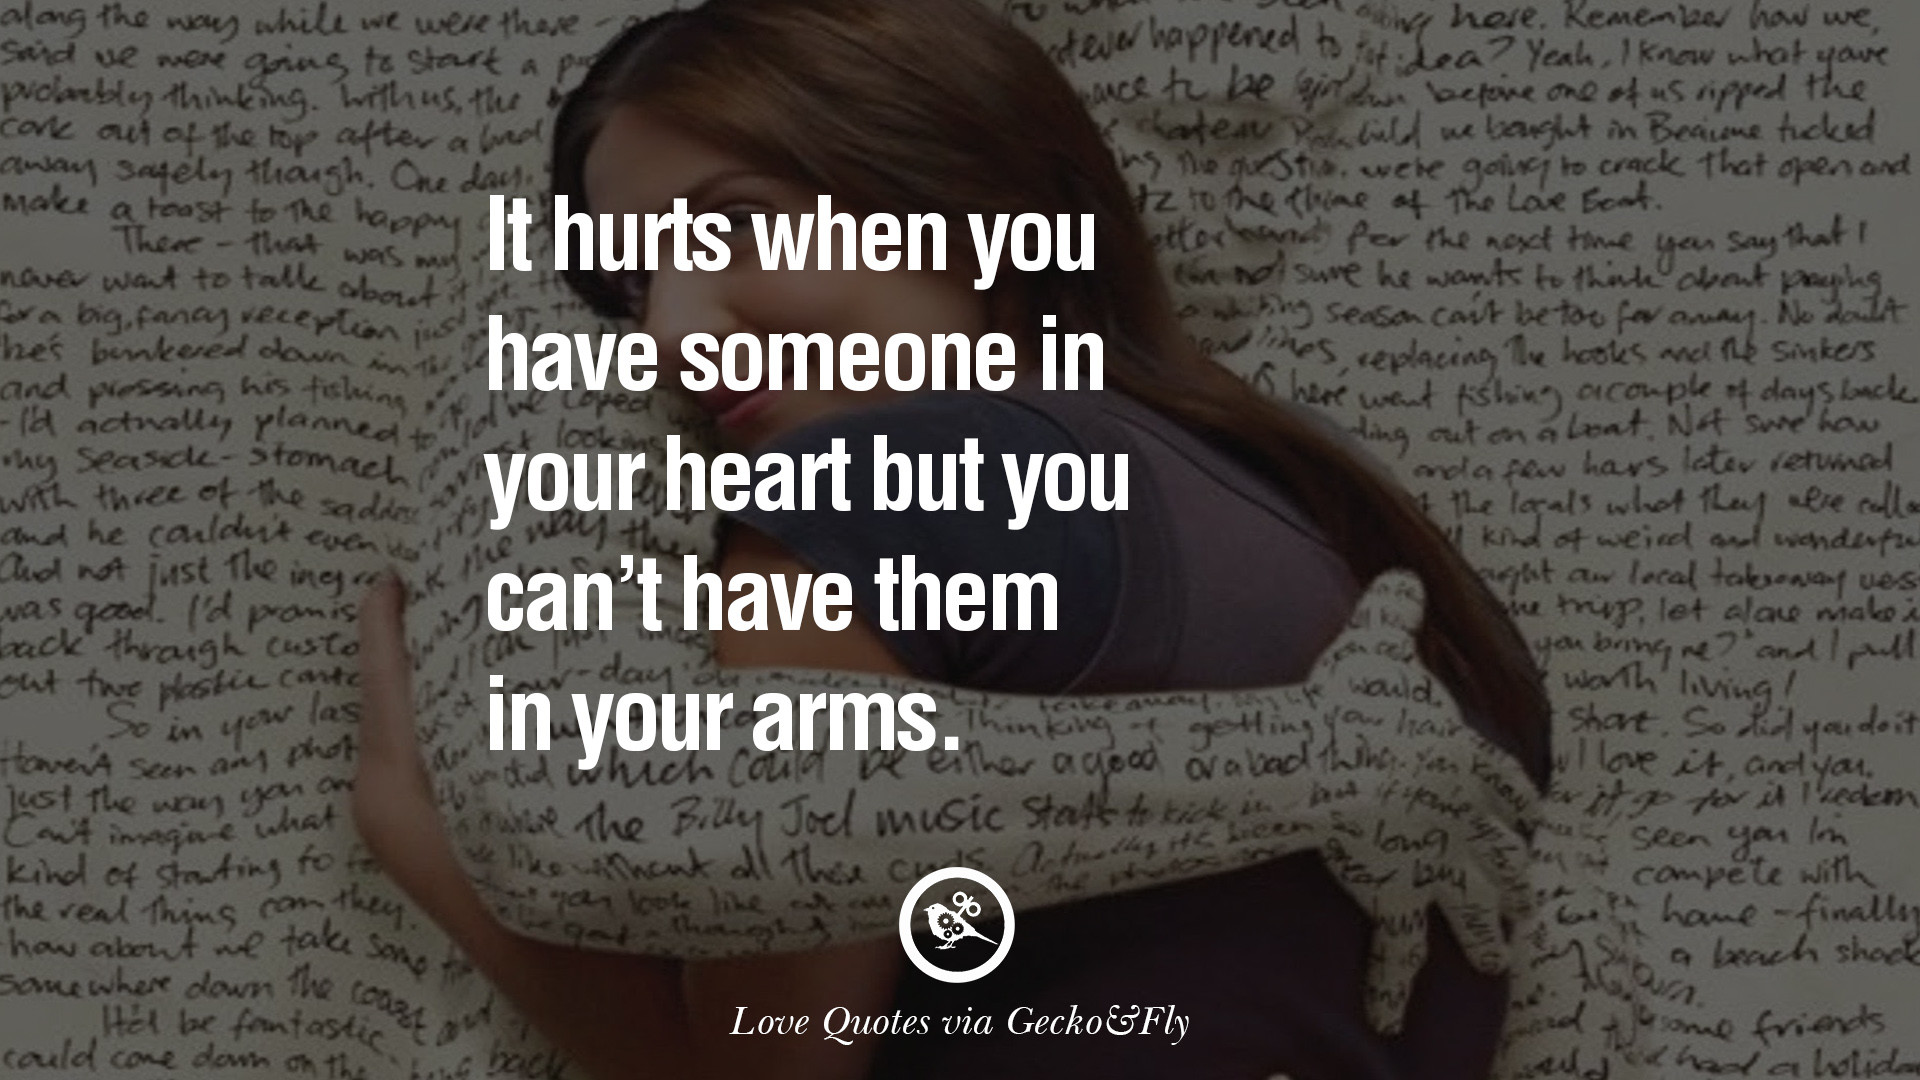 Cute Matching Computer Wallpapers I Love You Wallpapers With Quotes 56 Images